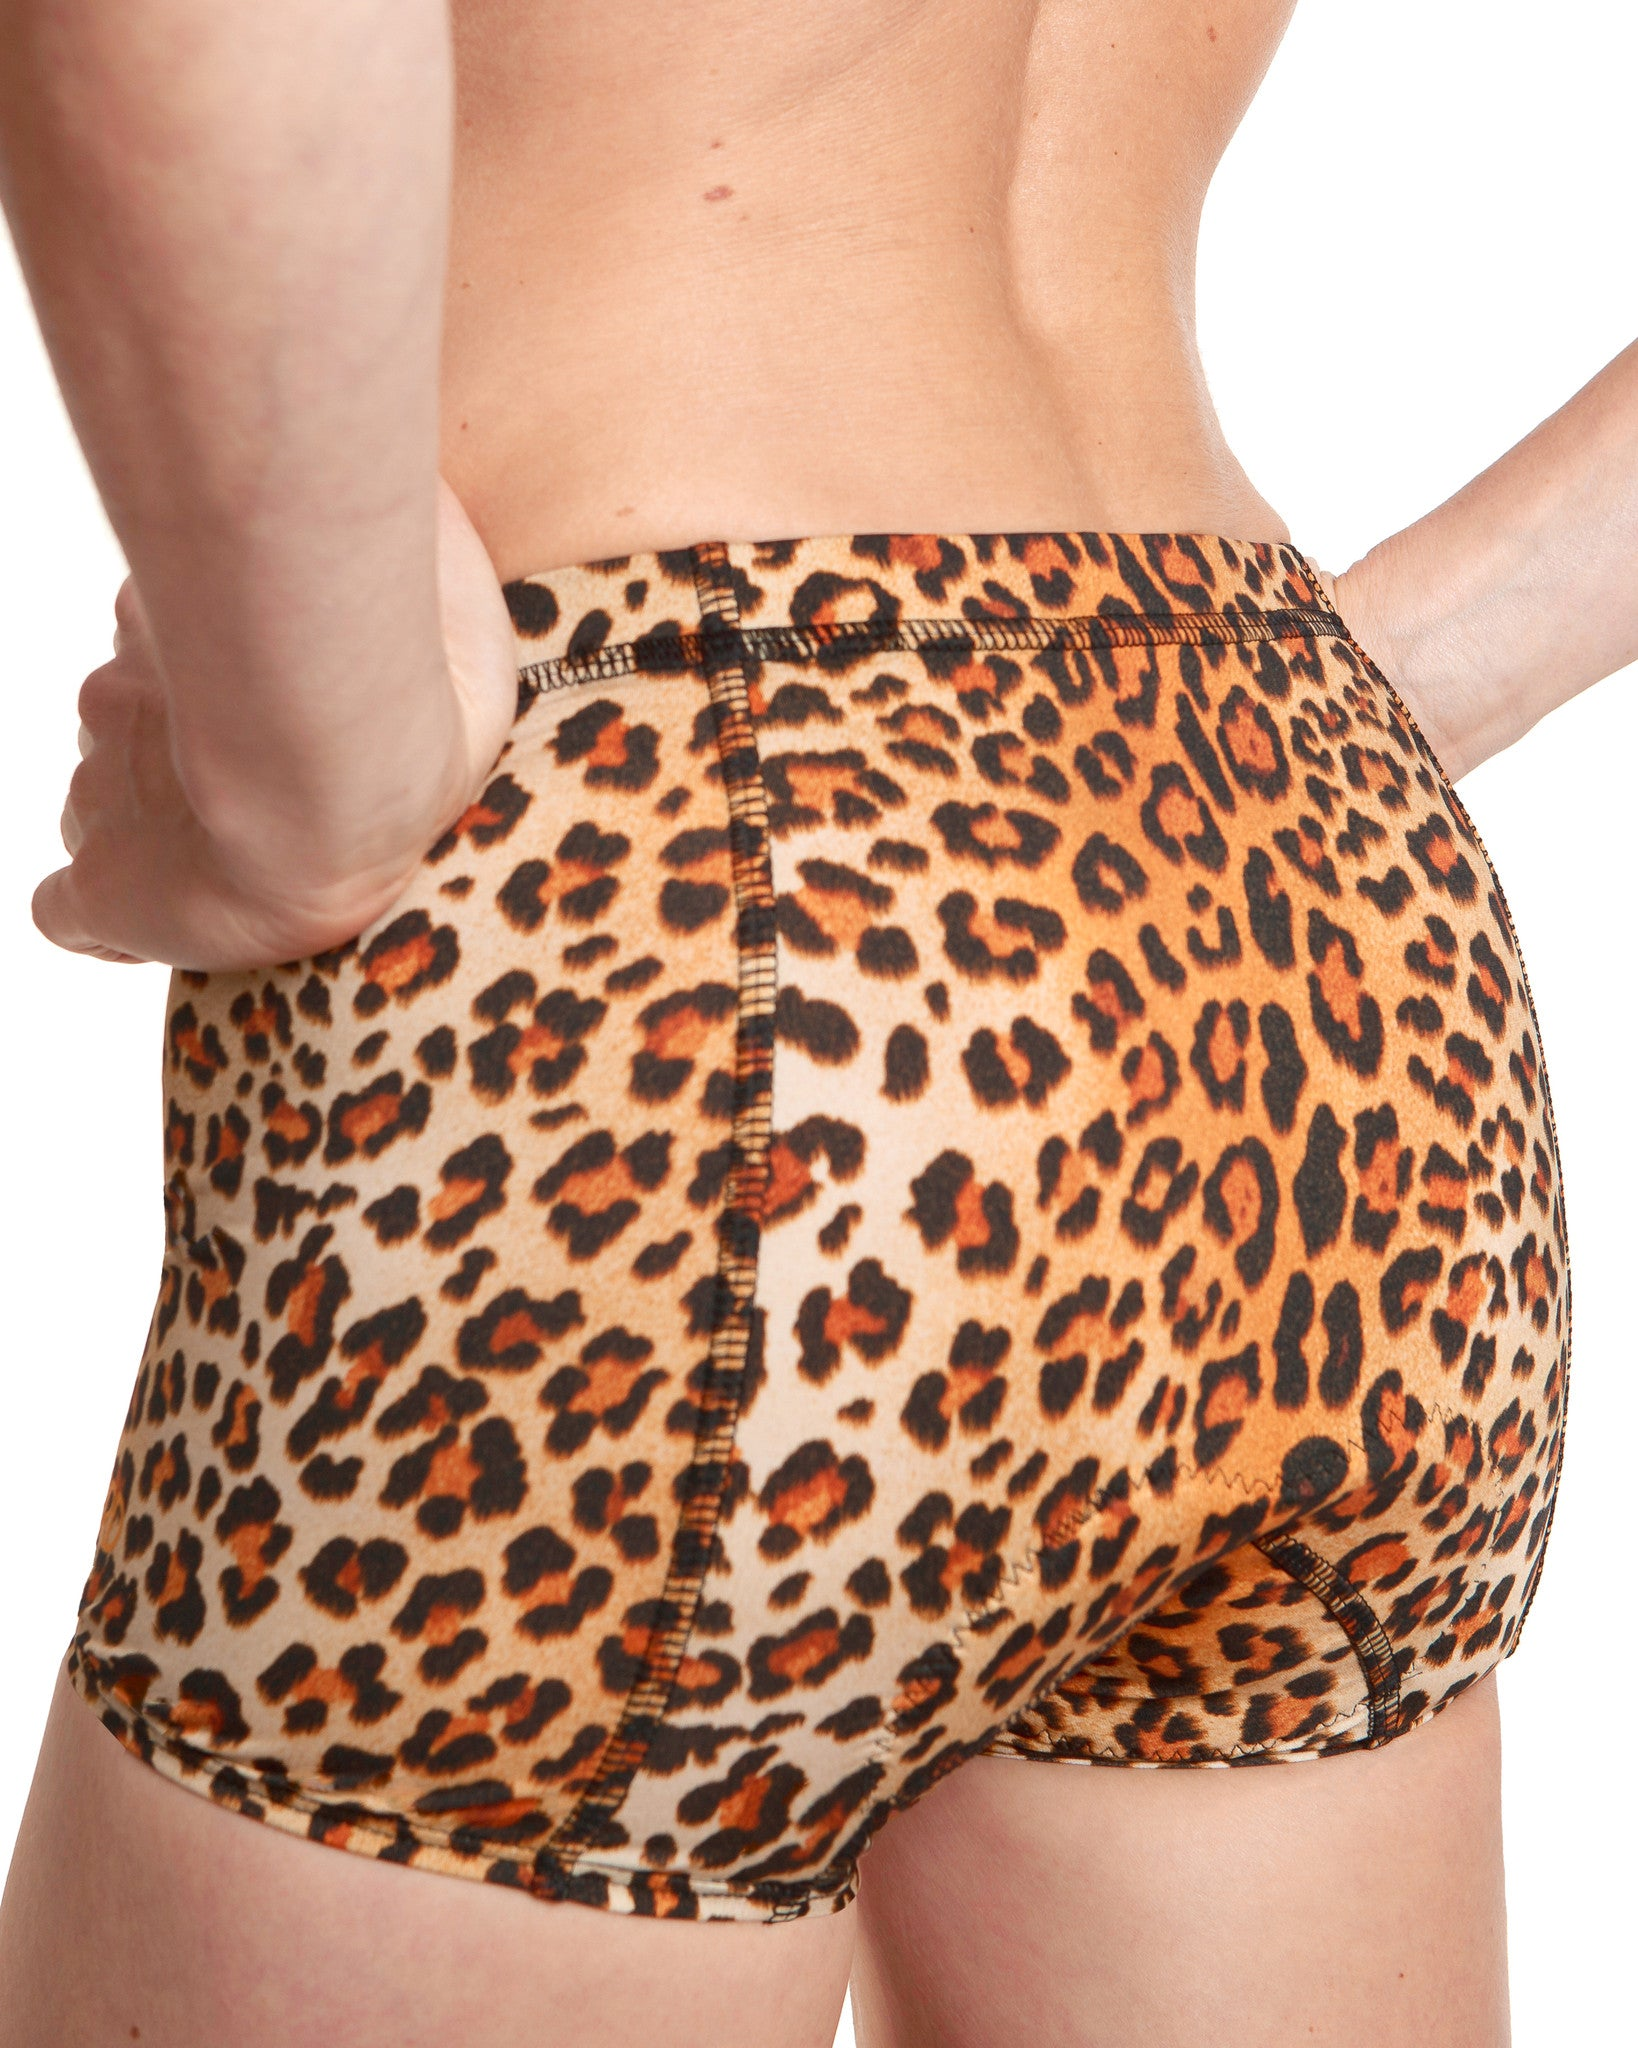 LPRD Leopard Cycling Hotpants | Close-up Back View Detail